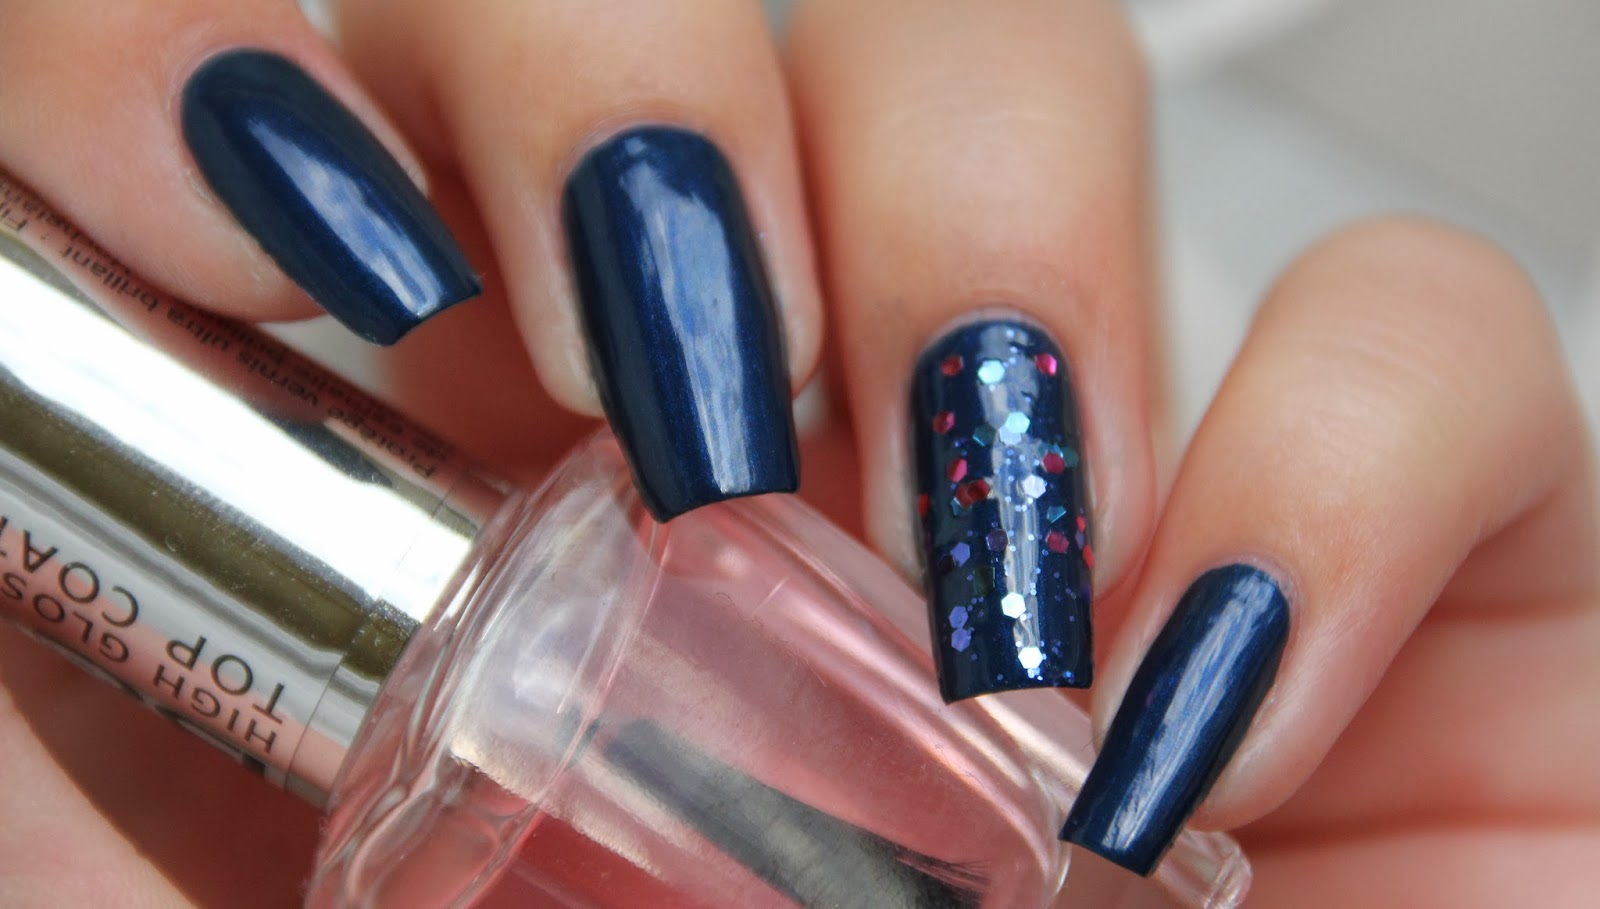 lacquervictim duo nagellack winerot glitter blue glitter jet set beauty. Black Bedroom Furniture Sets. Home Design Ideas